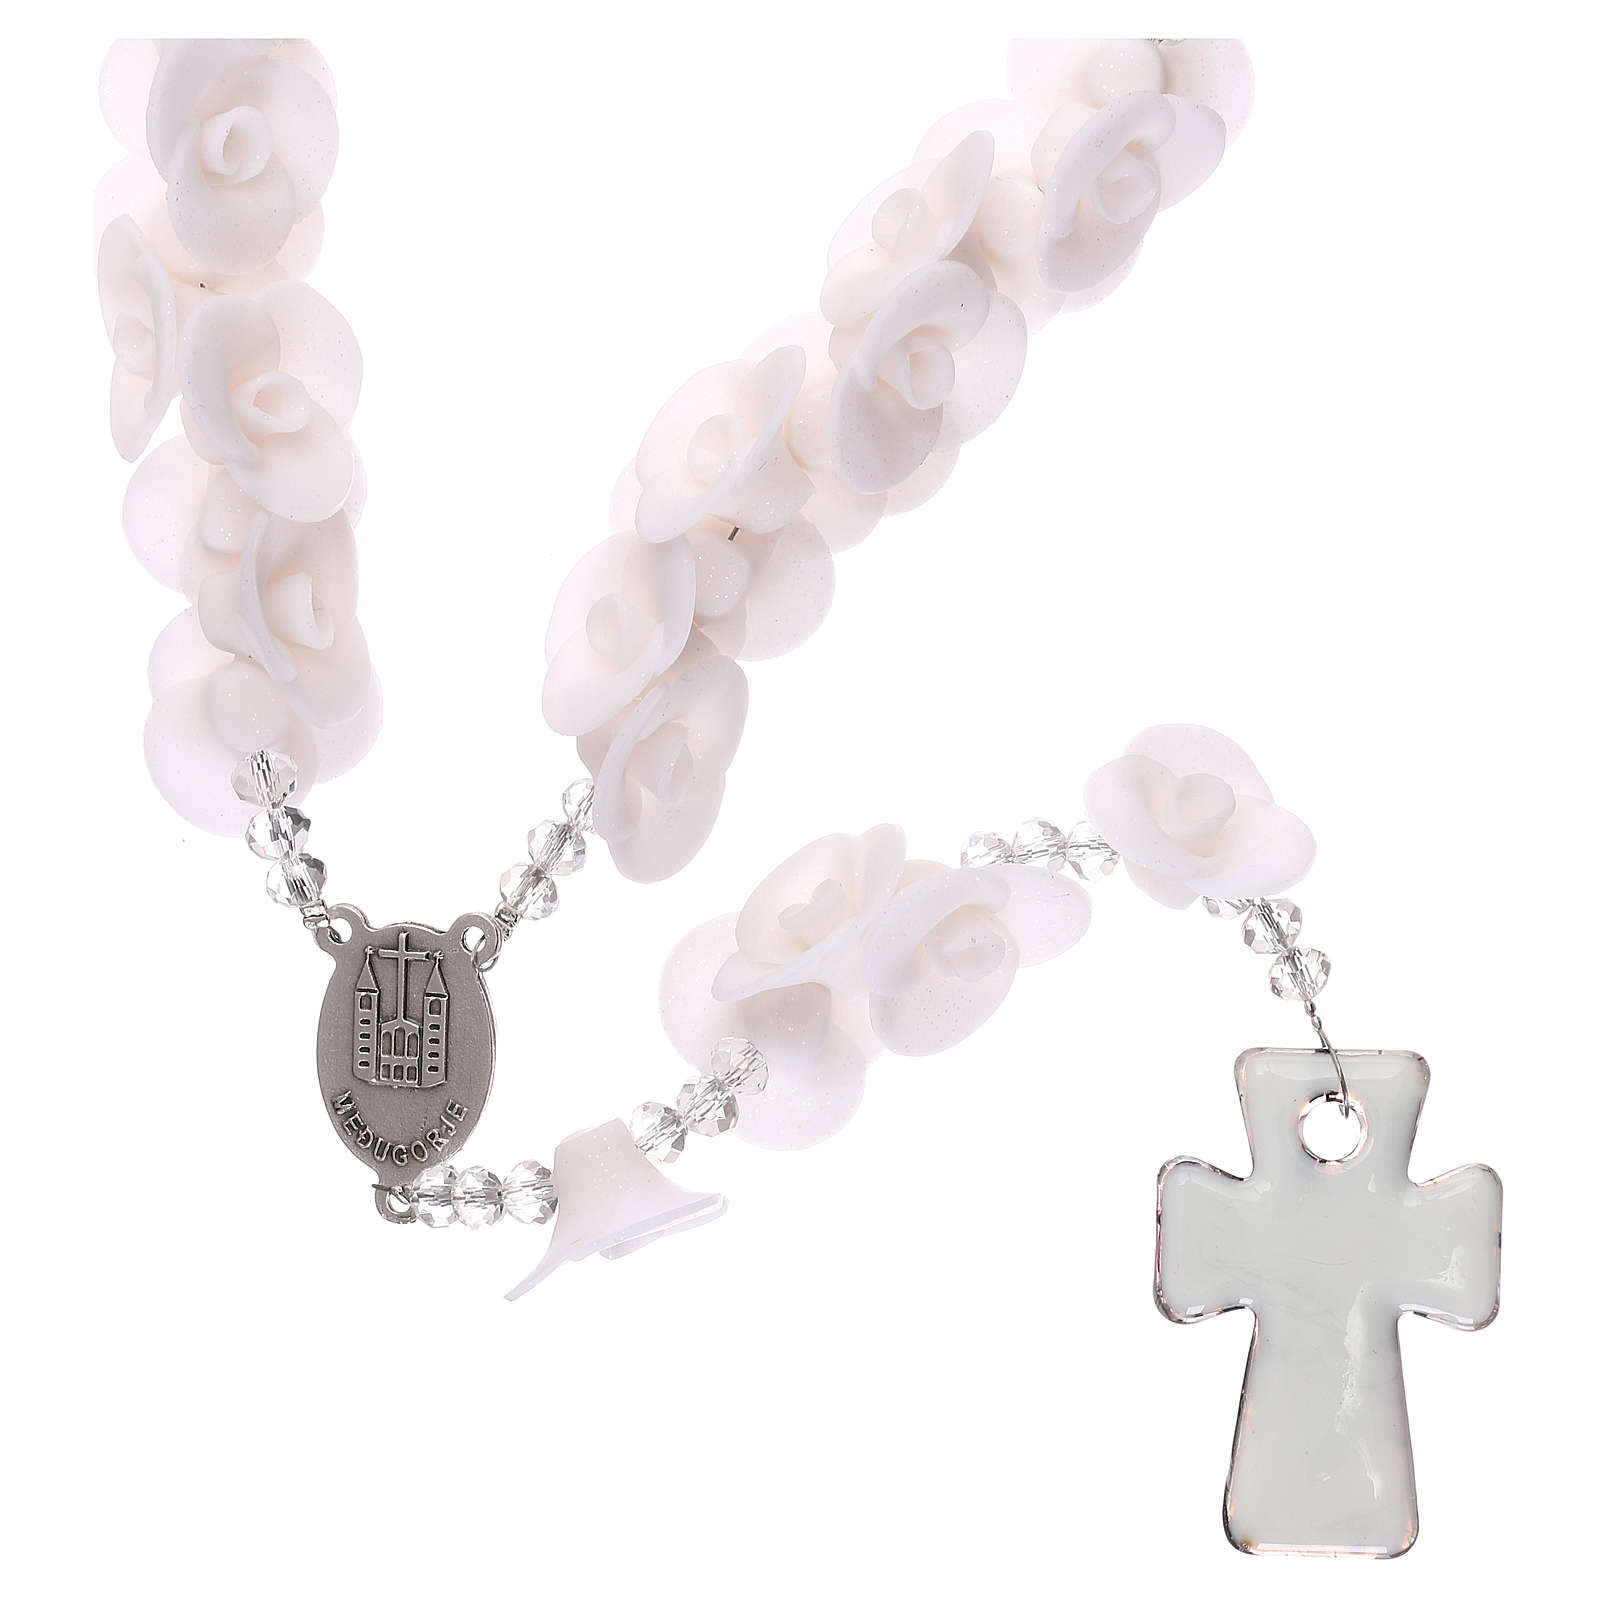 Medjugorje rosary with white roses, Murano glass 4